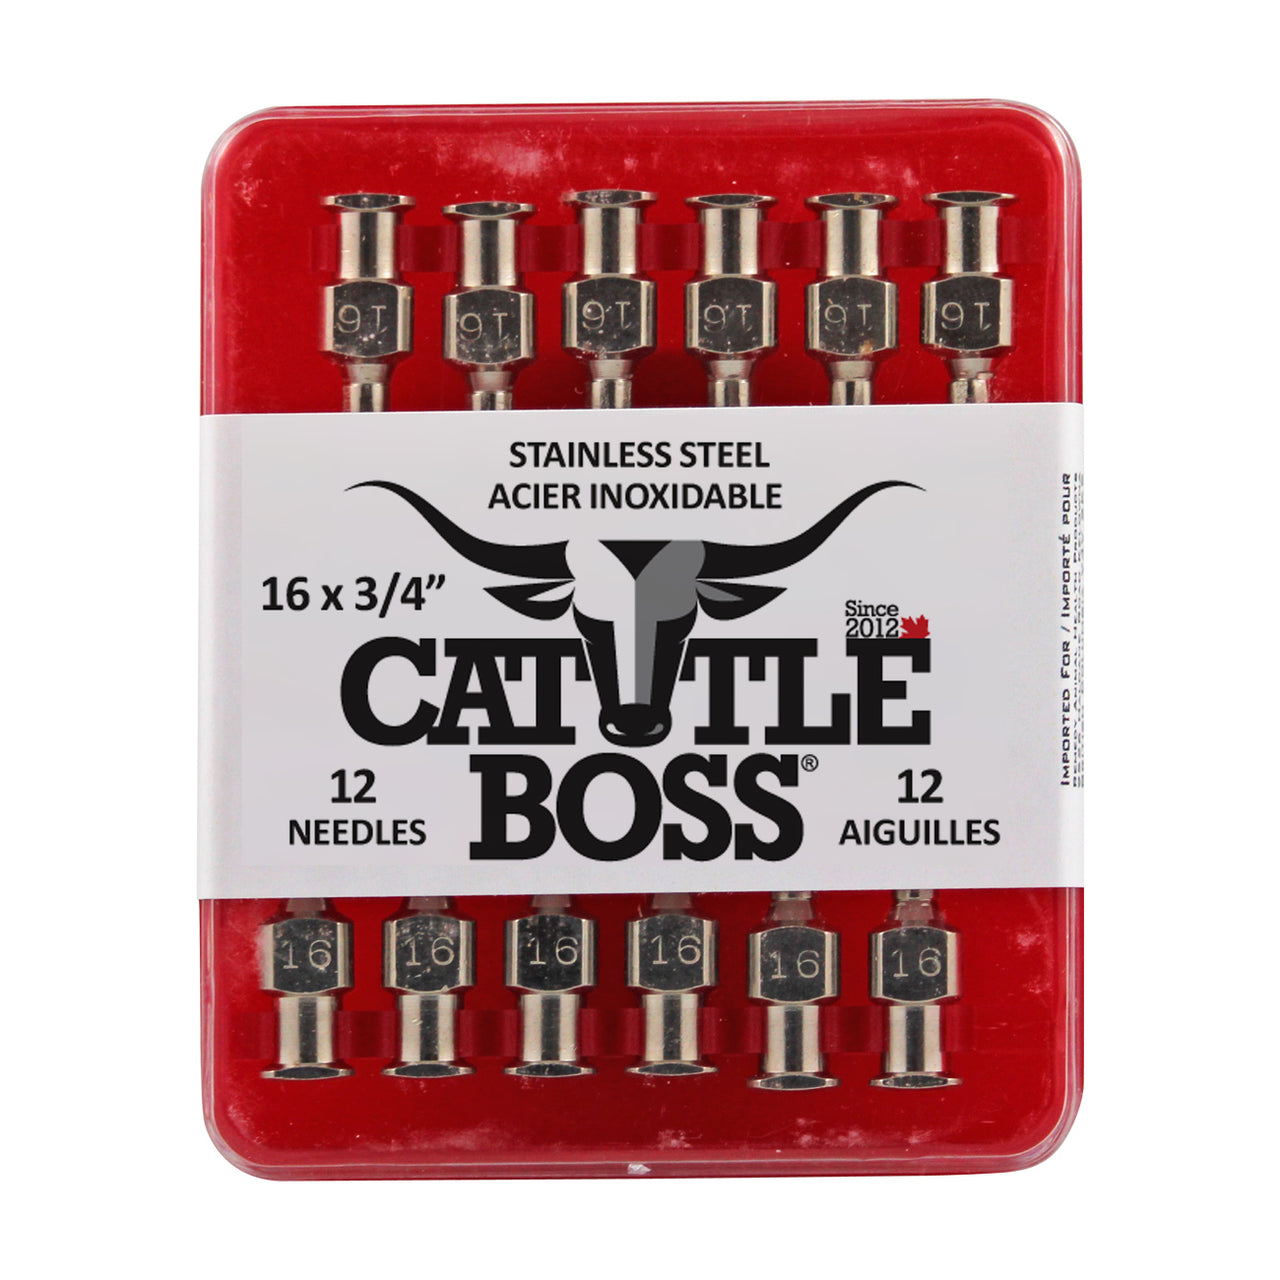 Cattle Boss stainless steel hub needle (12 pack) 16x3/4